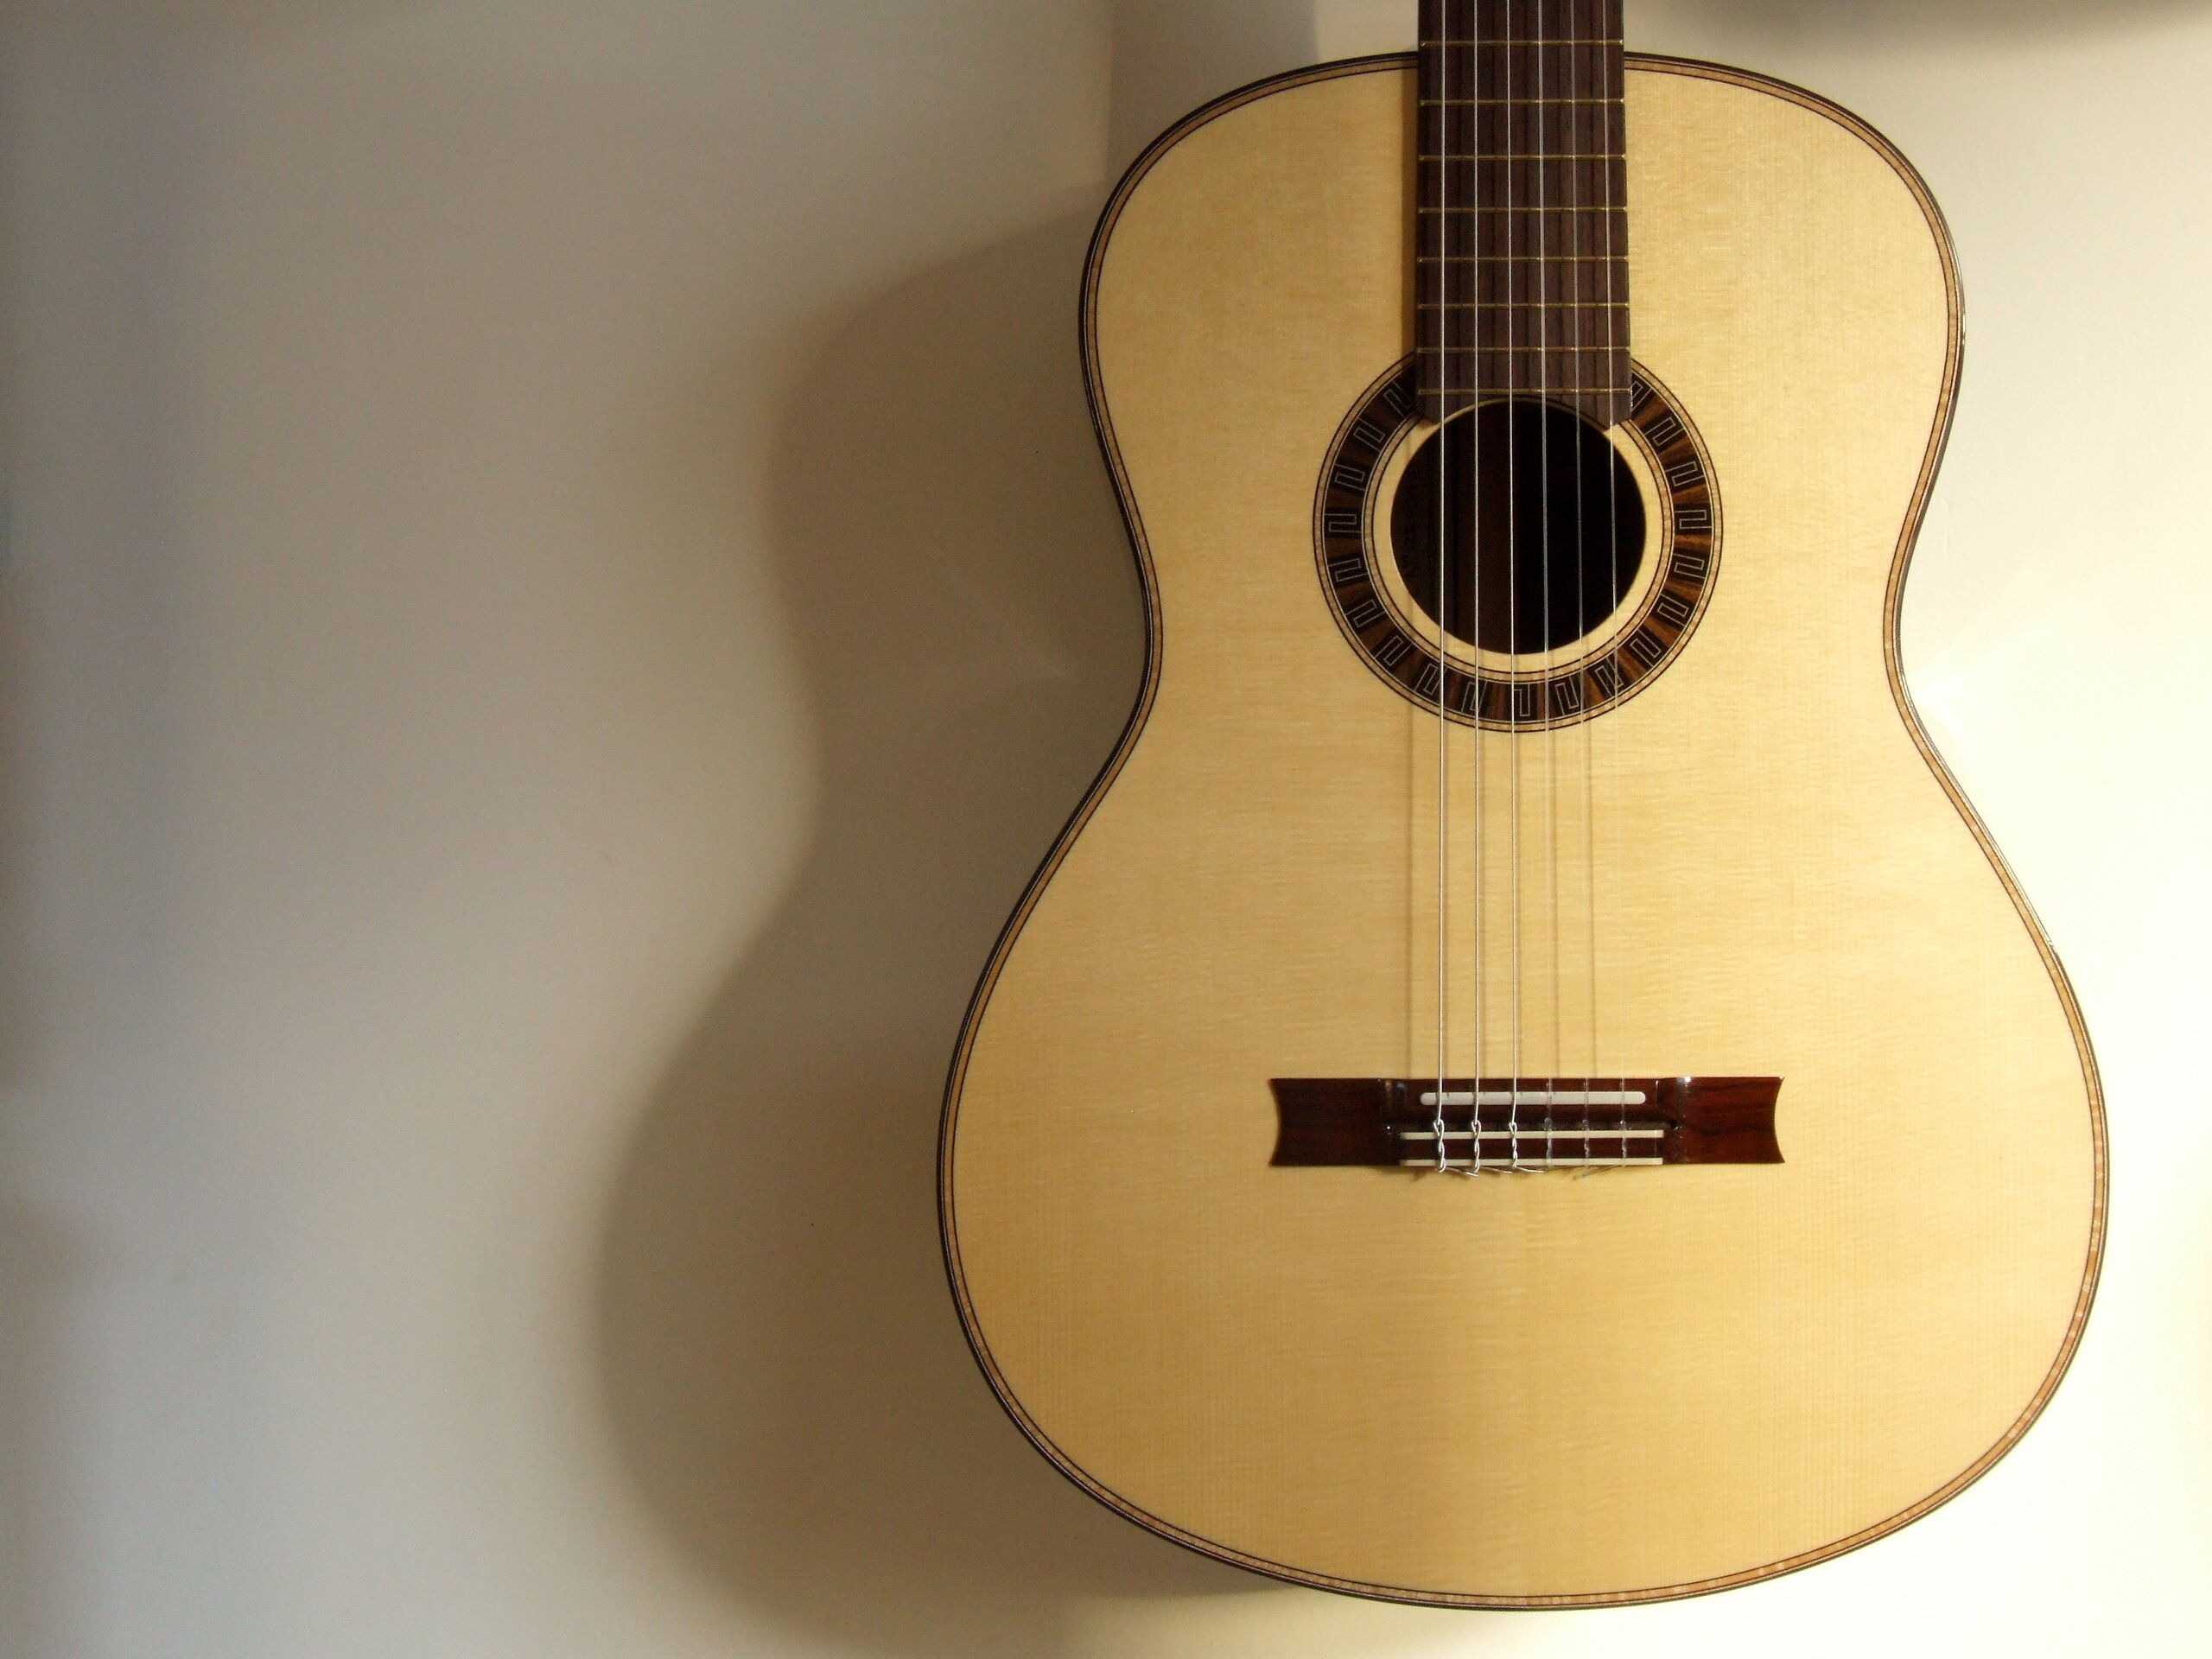 Spruce topped classical guitar with meander rosette